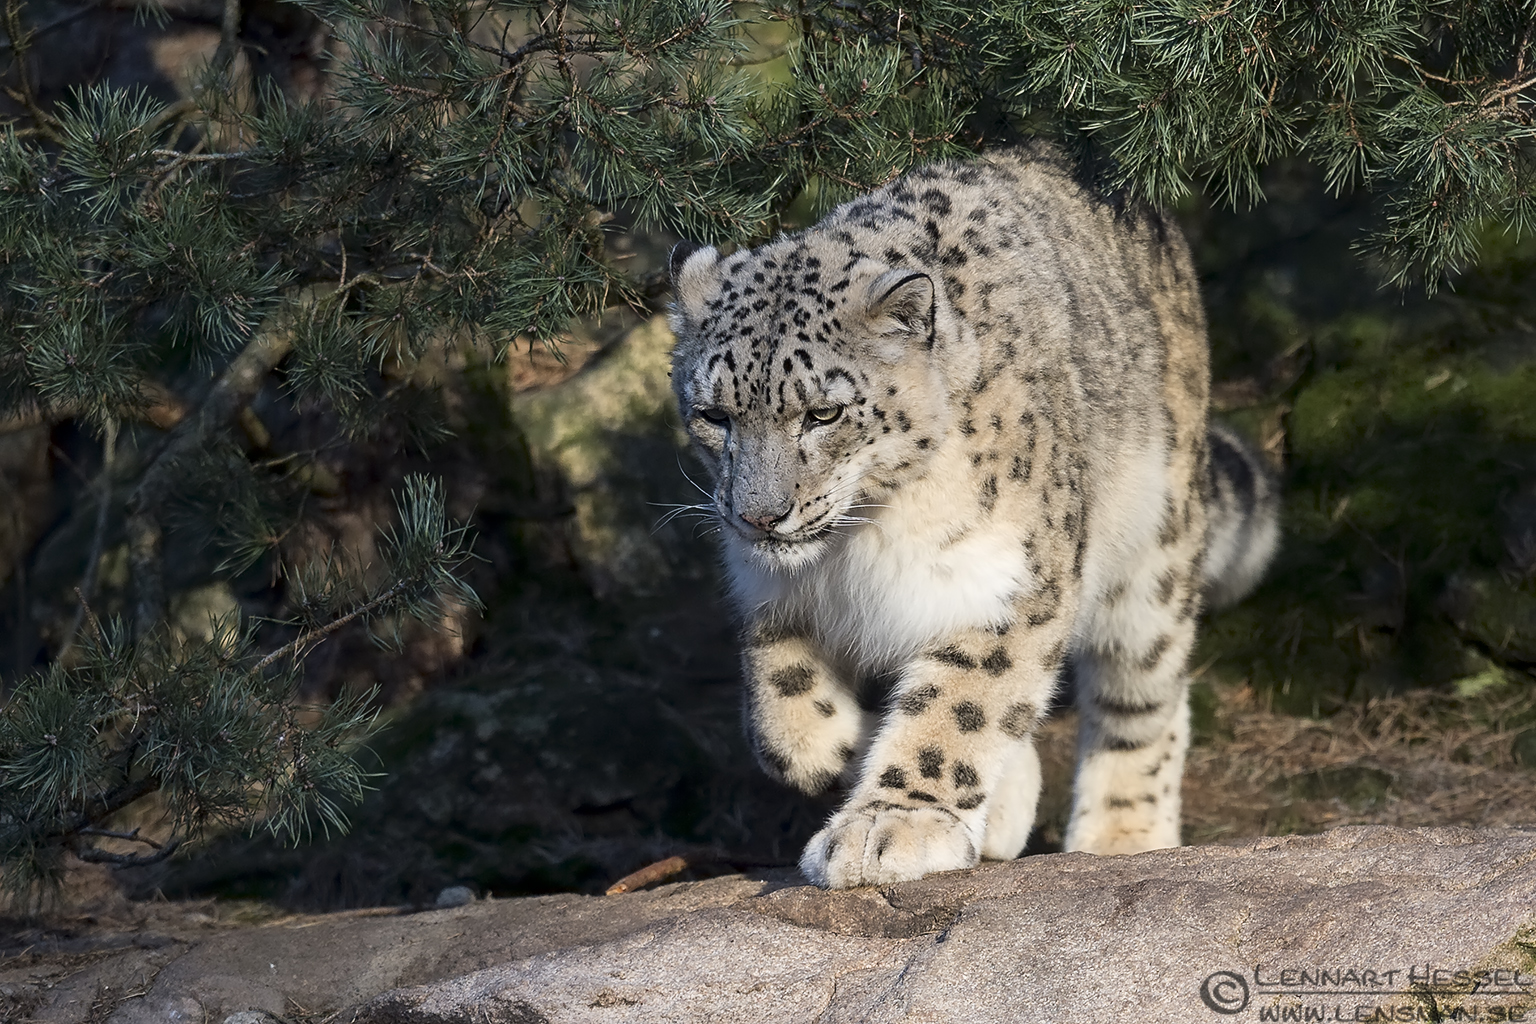 Snow leopard at Nordens Ark